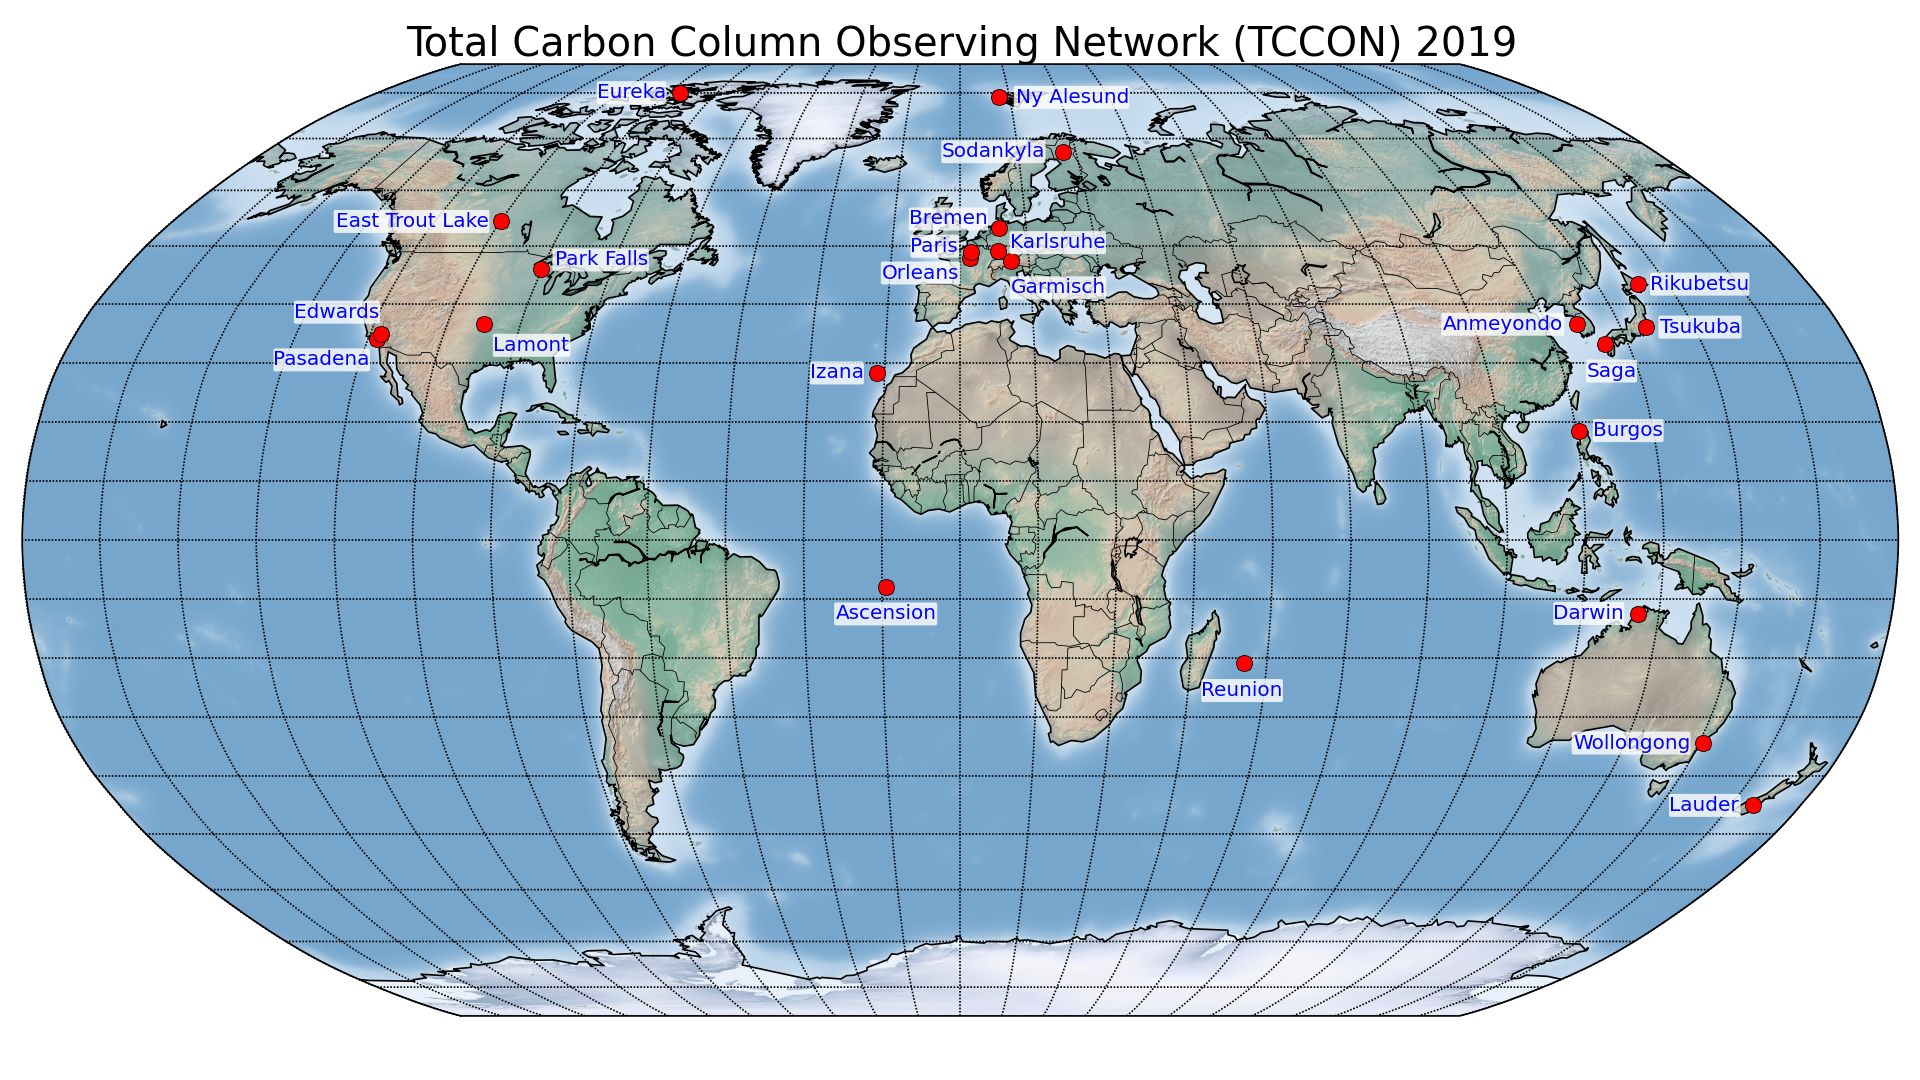 Map of the Total Carbon Column Observing Network